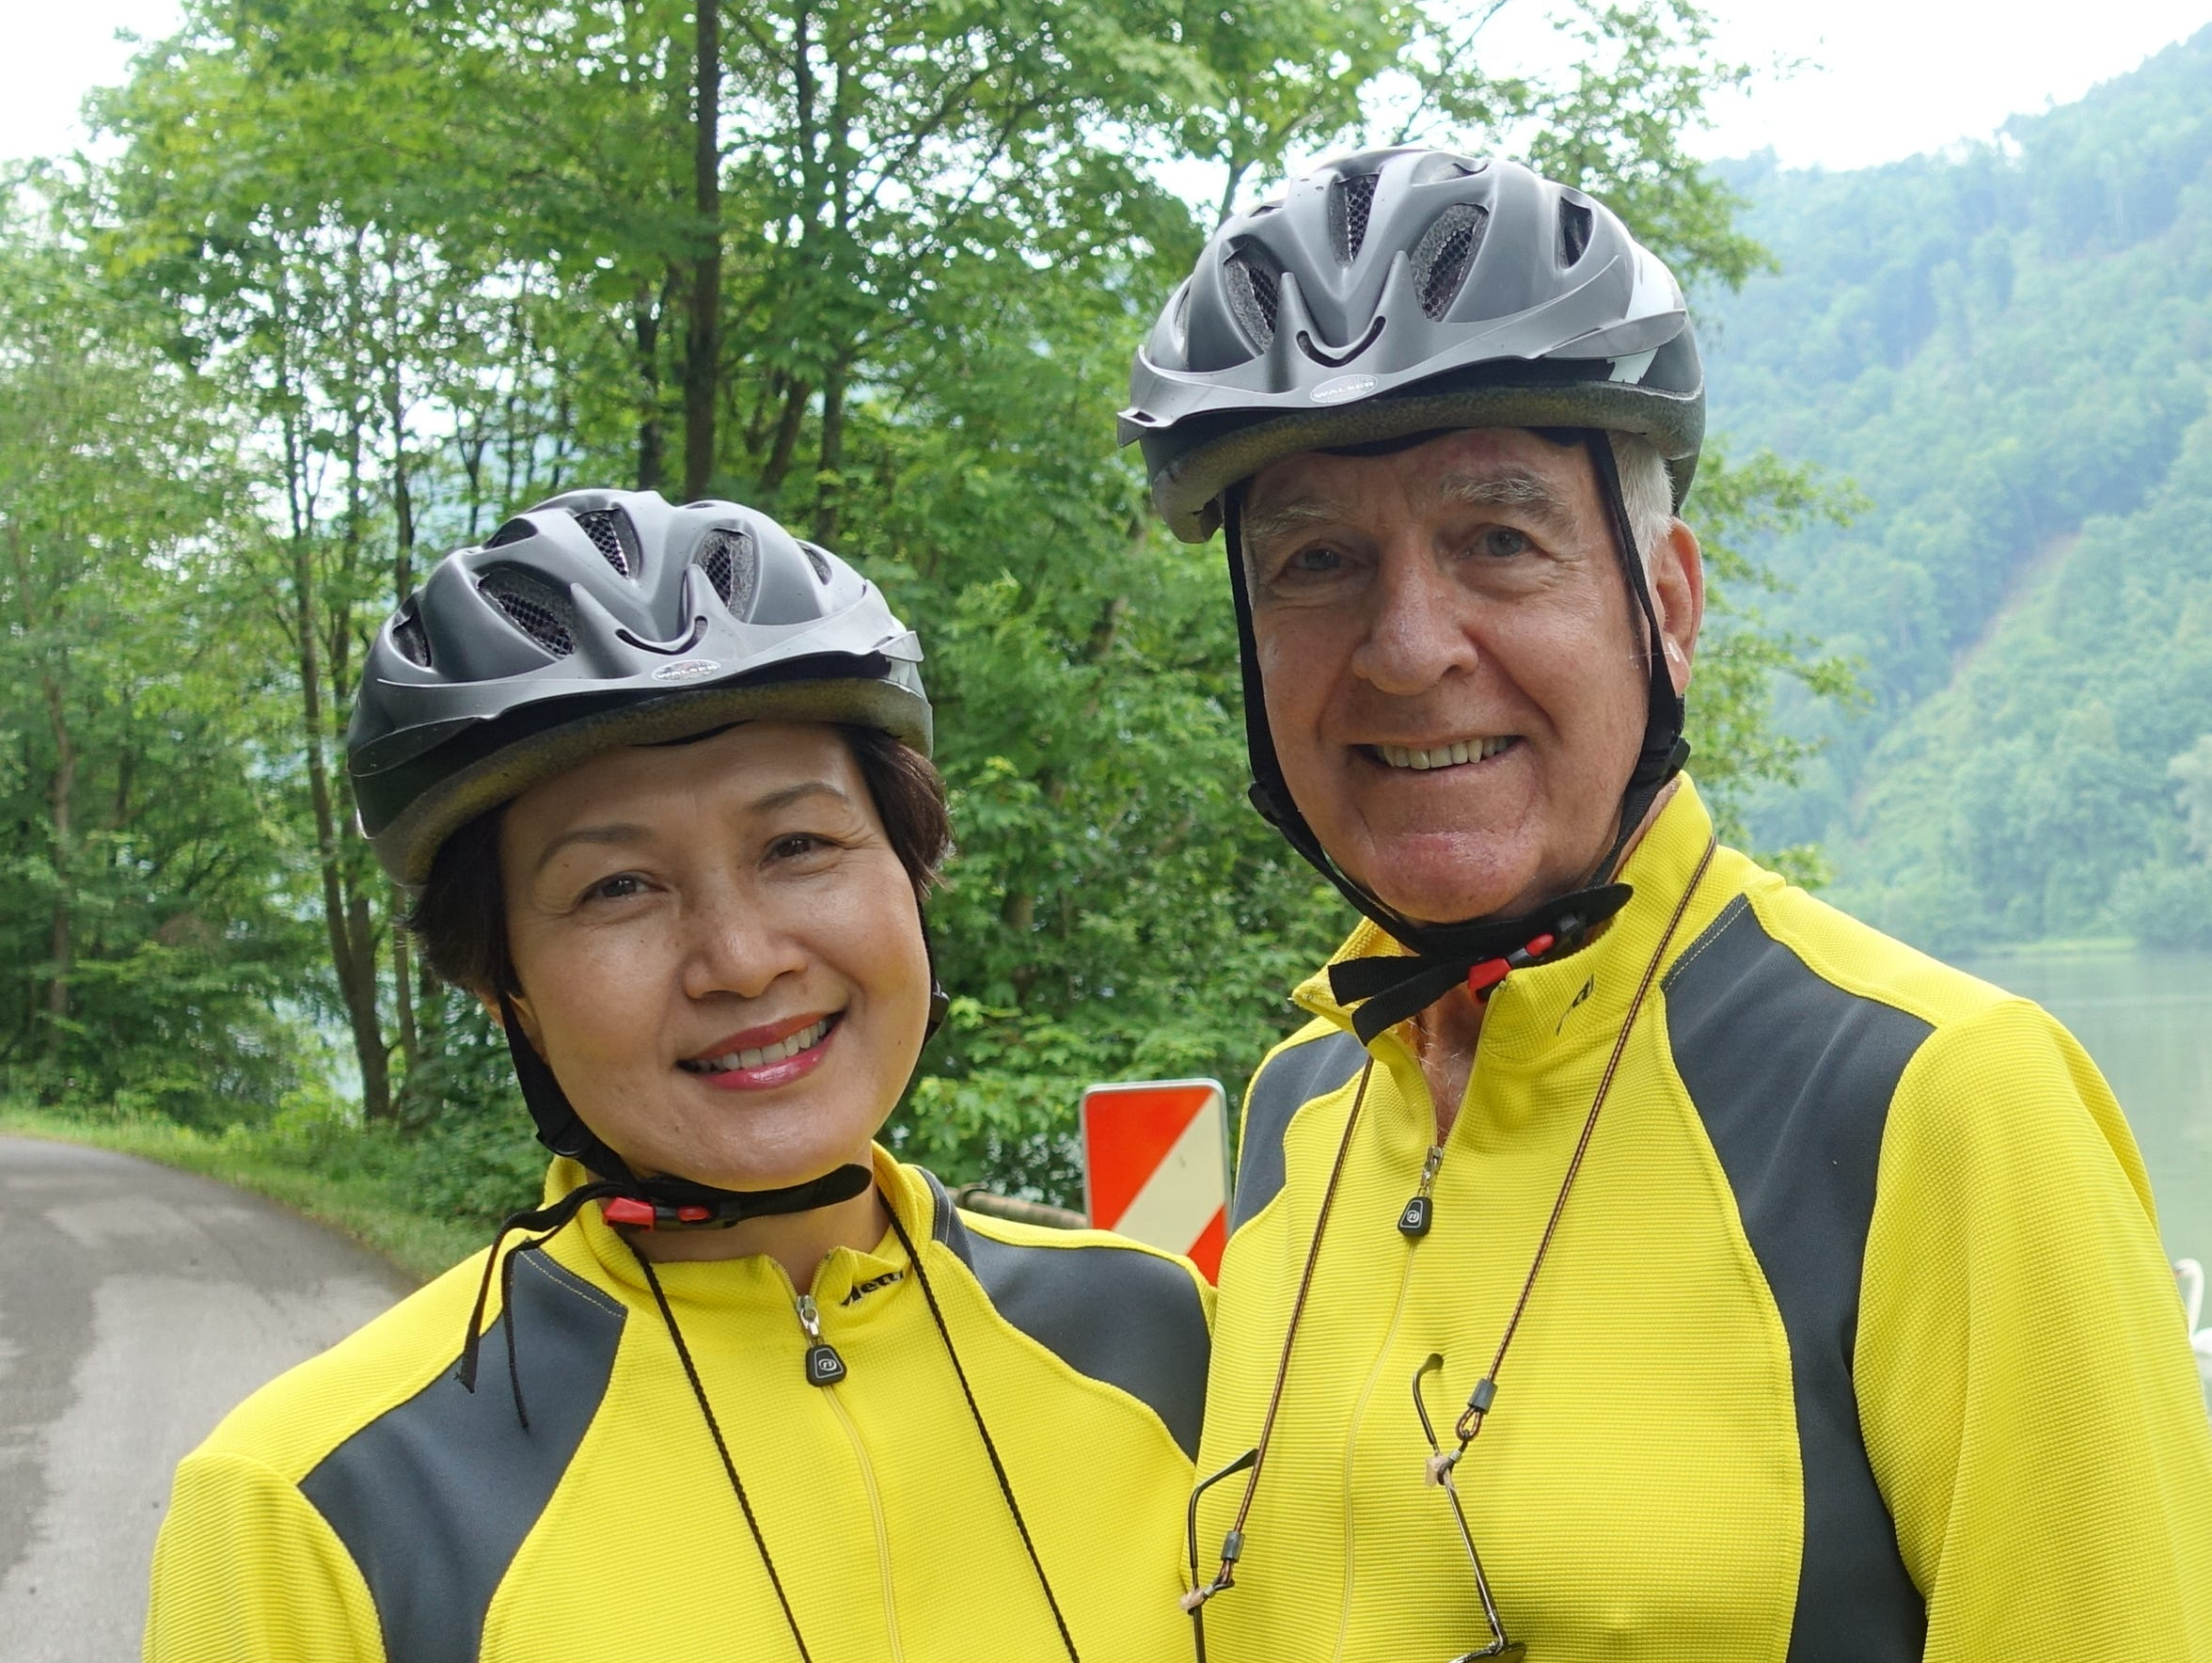 Pete Peterson and his wife, Vi, are avid bicyclists.